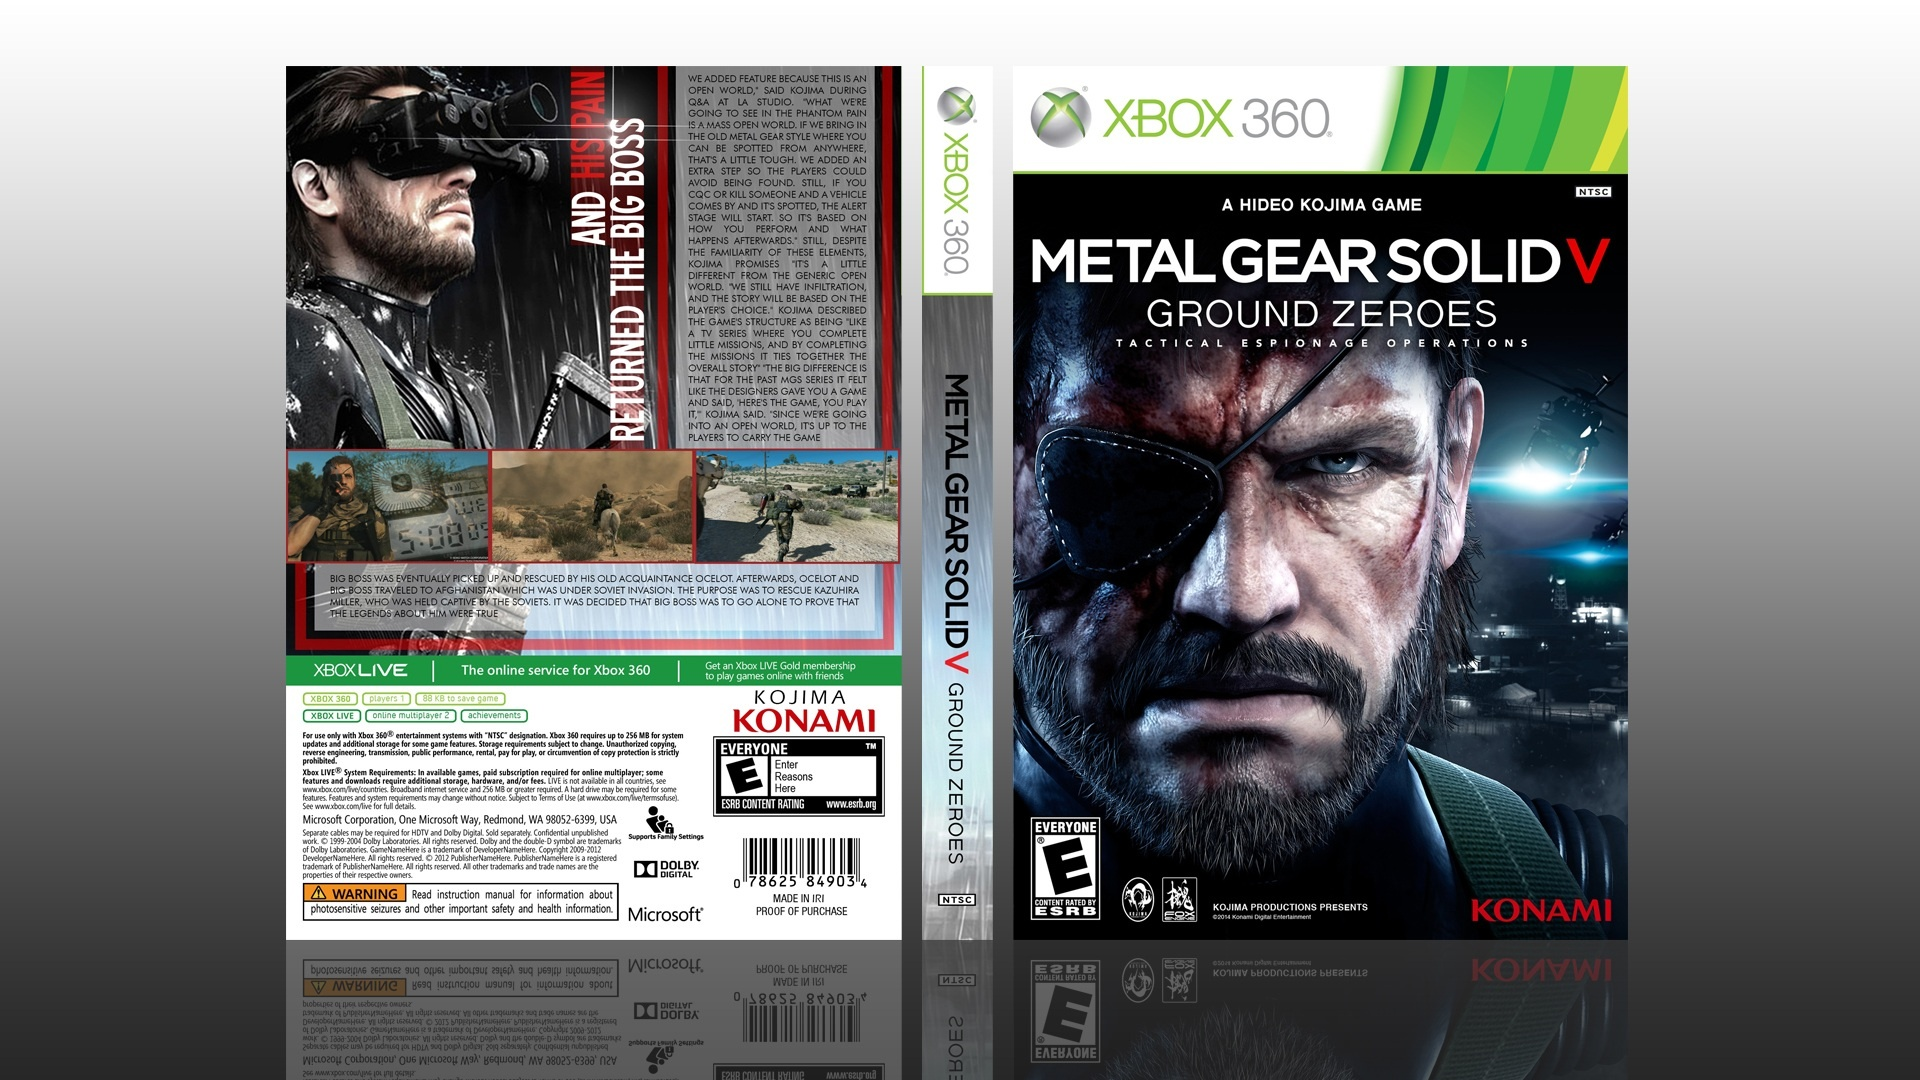 Metal Gear Solid V: Ground Zeroes box cover